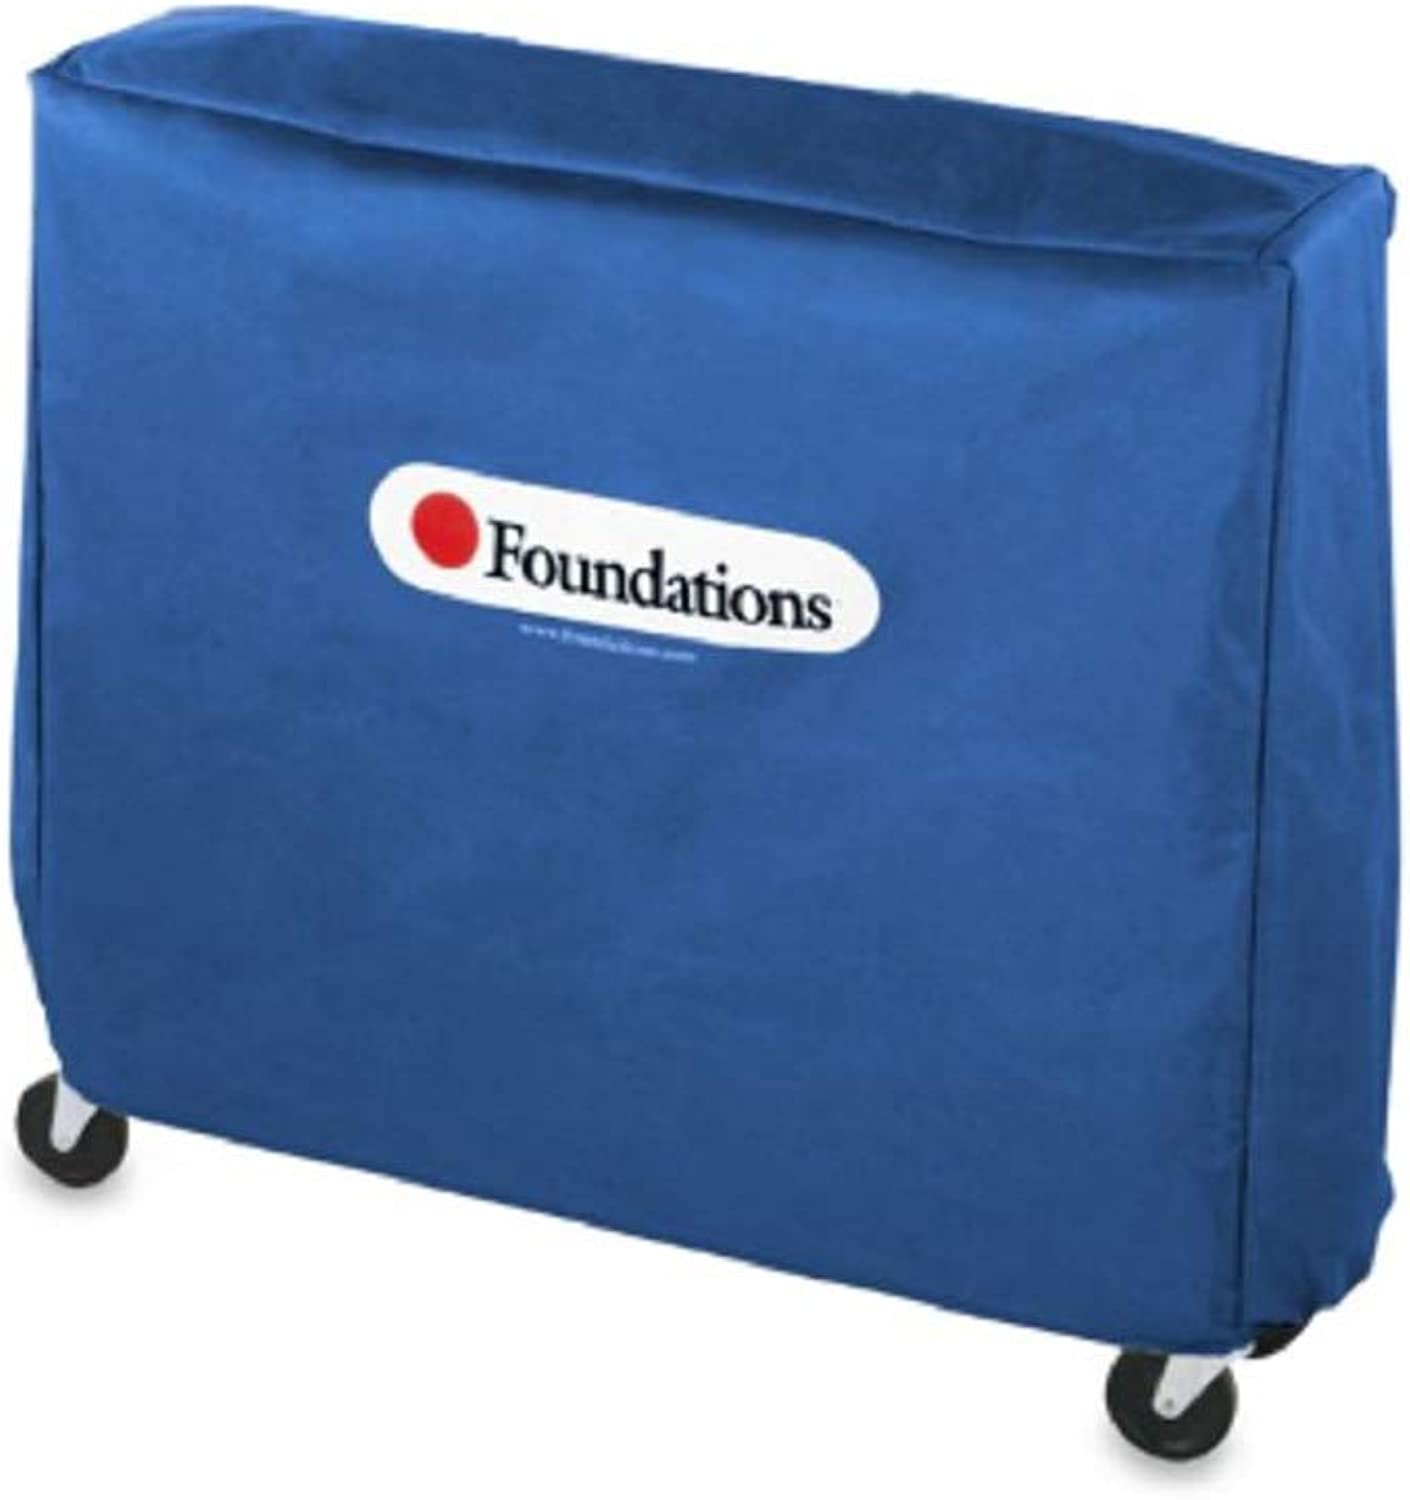 Foundations Crib Saver Compact-Size Crib Cover in bluee